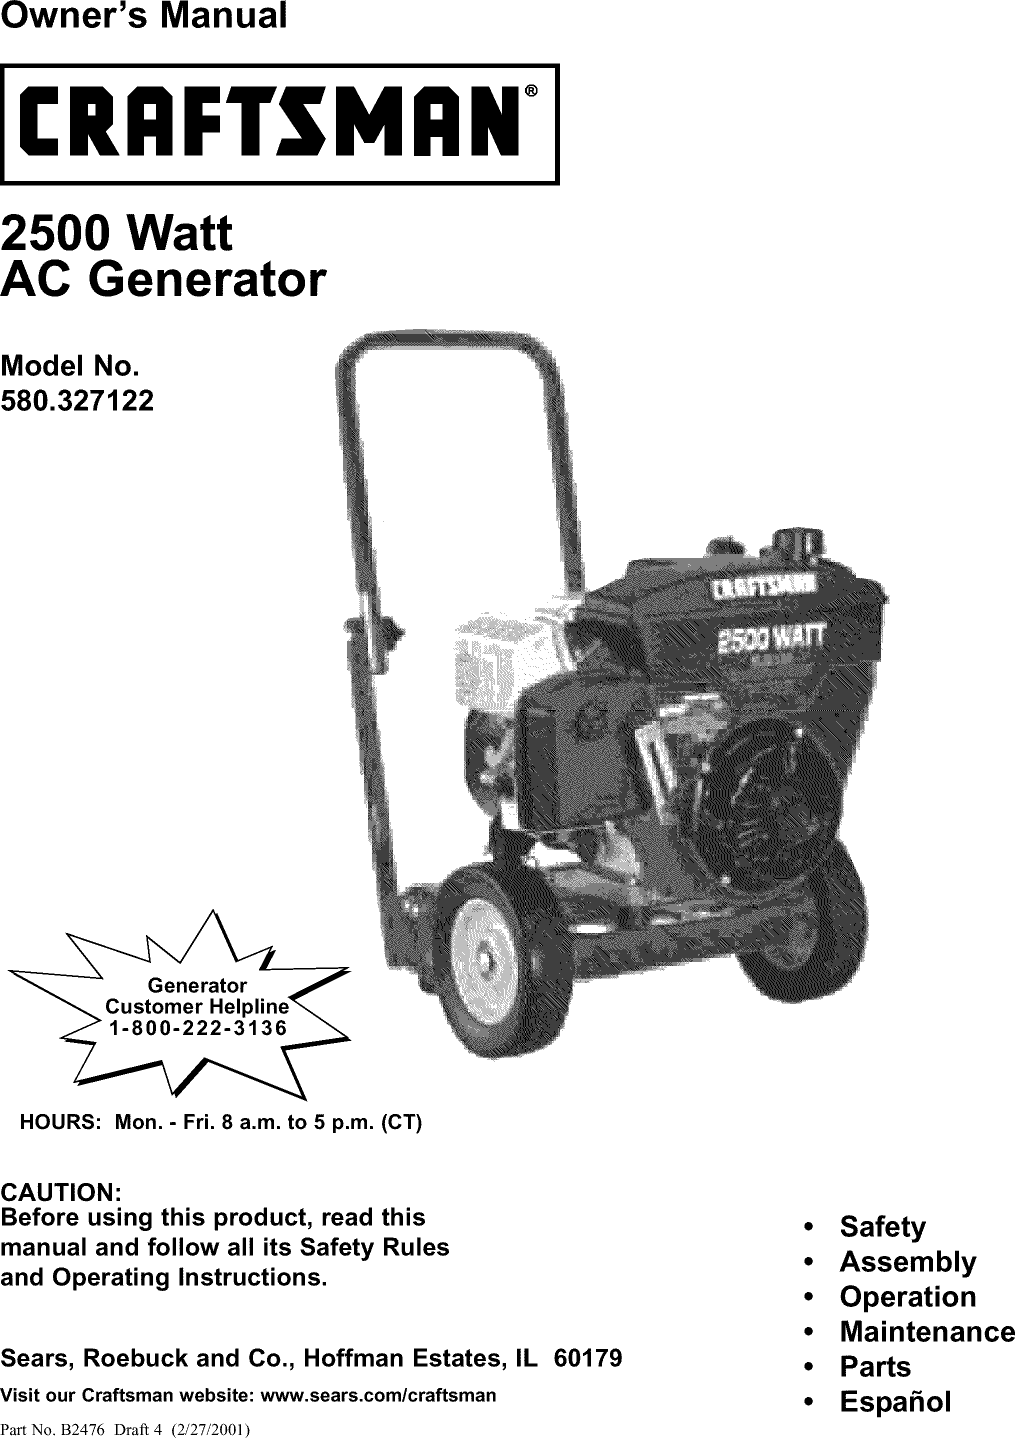 Craftsman 580327120 User Manual 2500W GENERATOR ON A 2